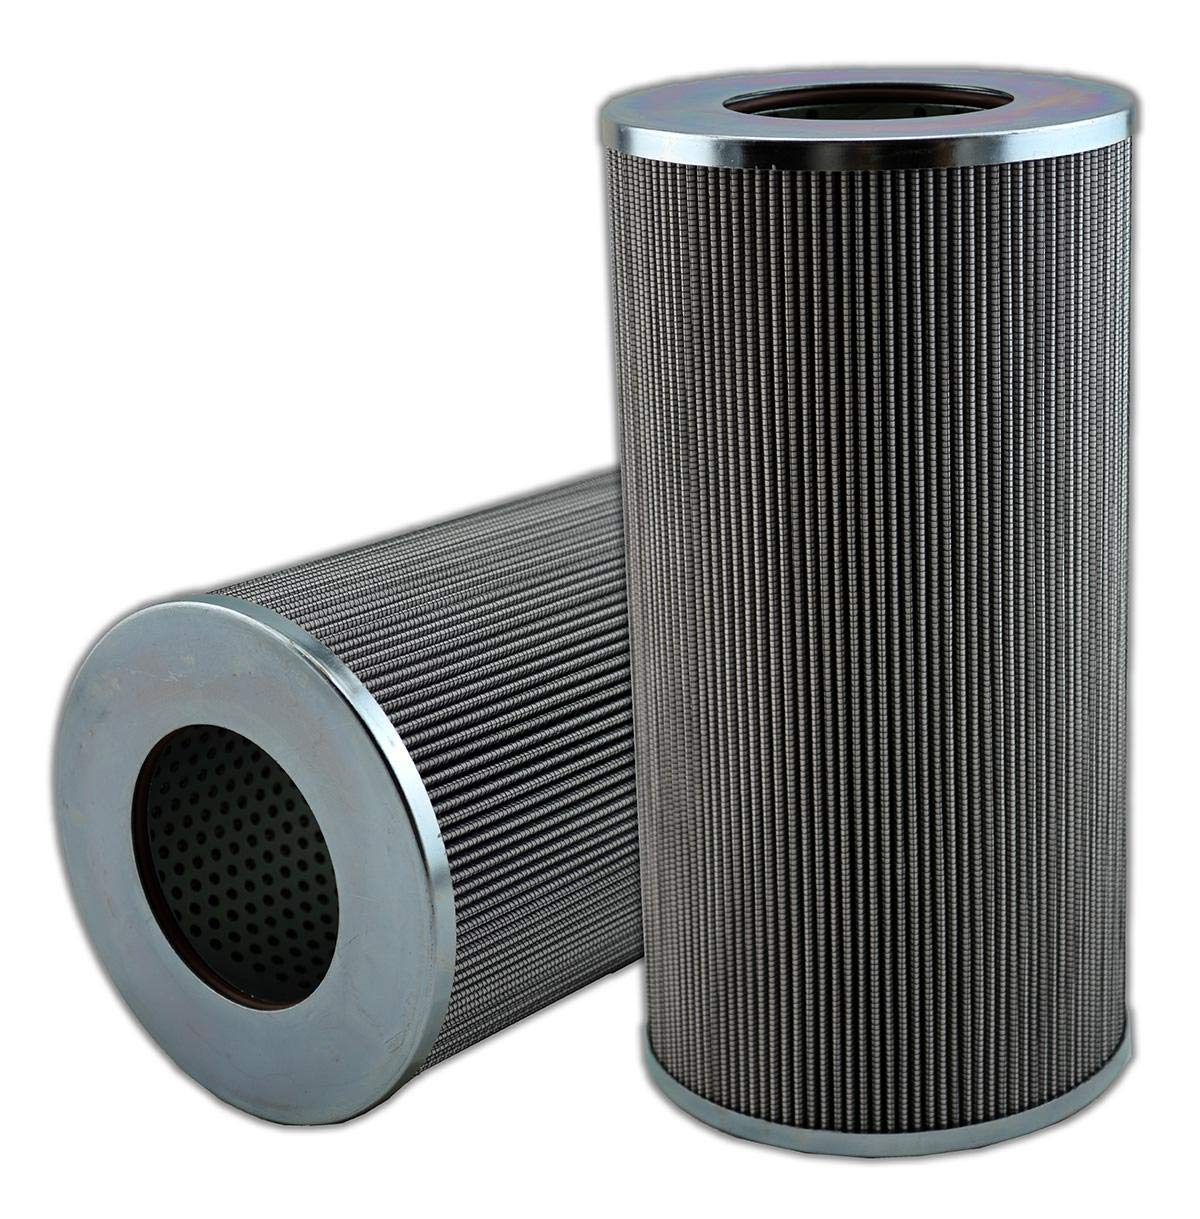 HYDAC//HYCON 0400RN10BNHC Replacement Hydraulic Filter from Big Filter Store